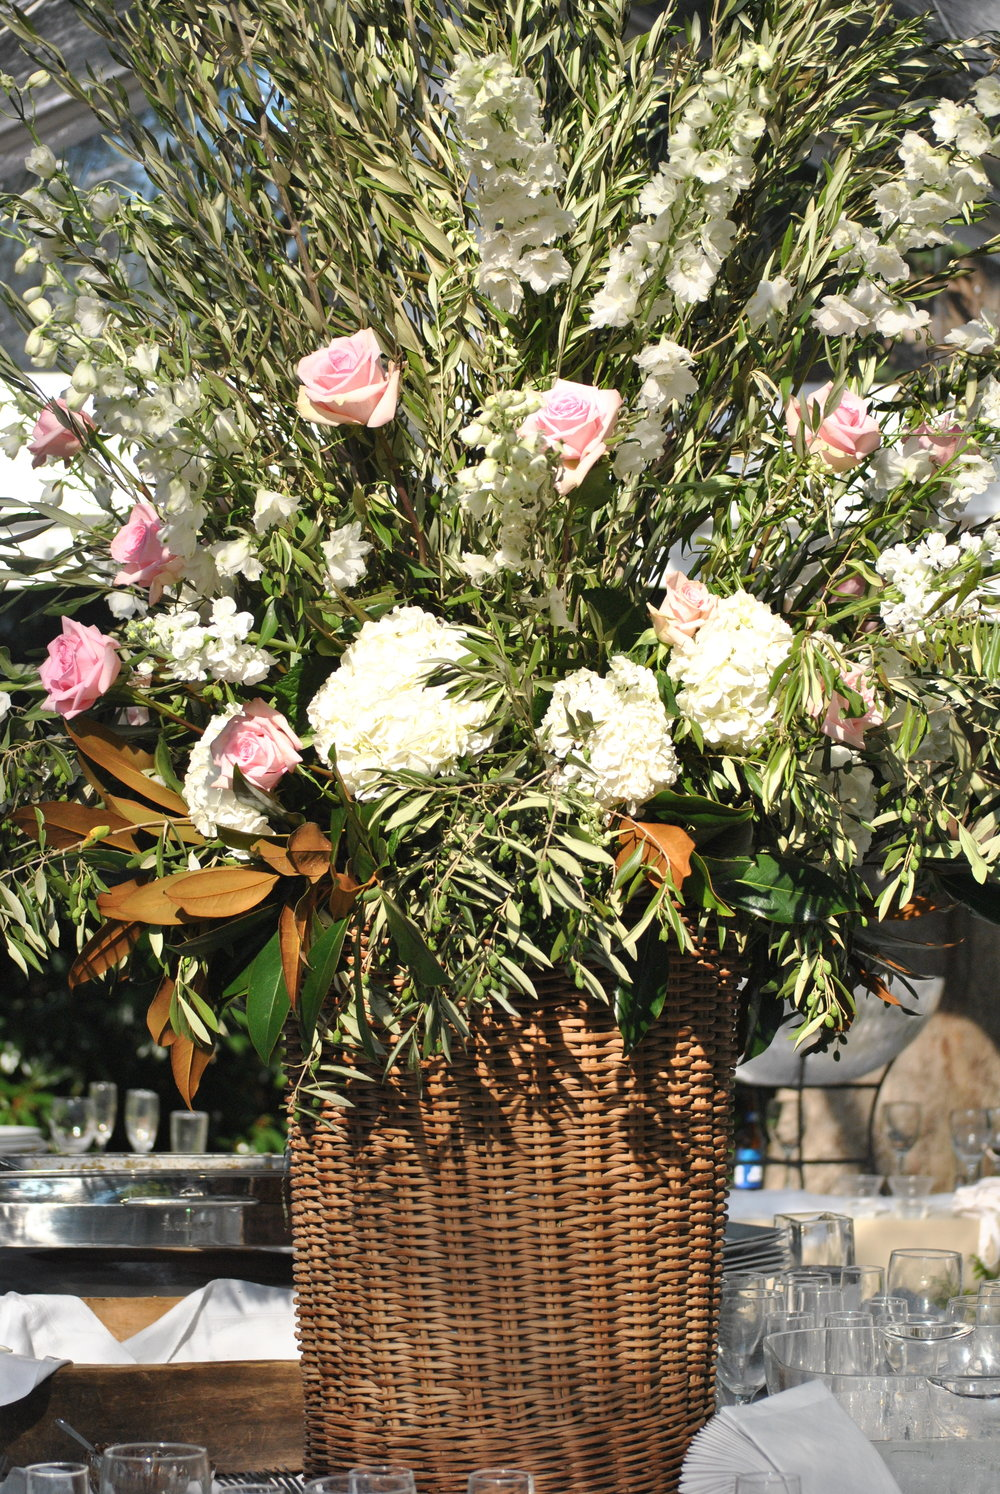 Spectacular Flower Arrangement for wedding buffet centerpiece